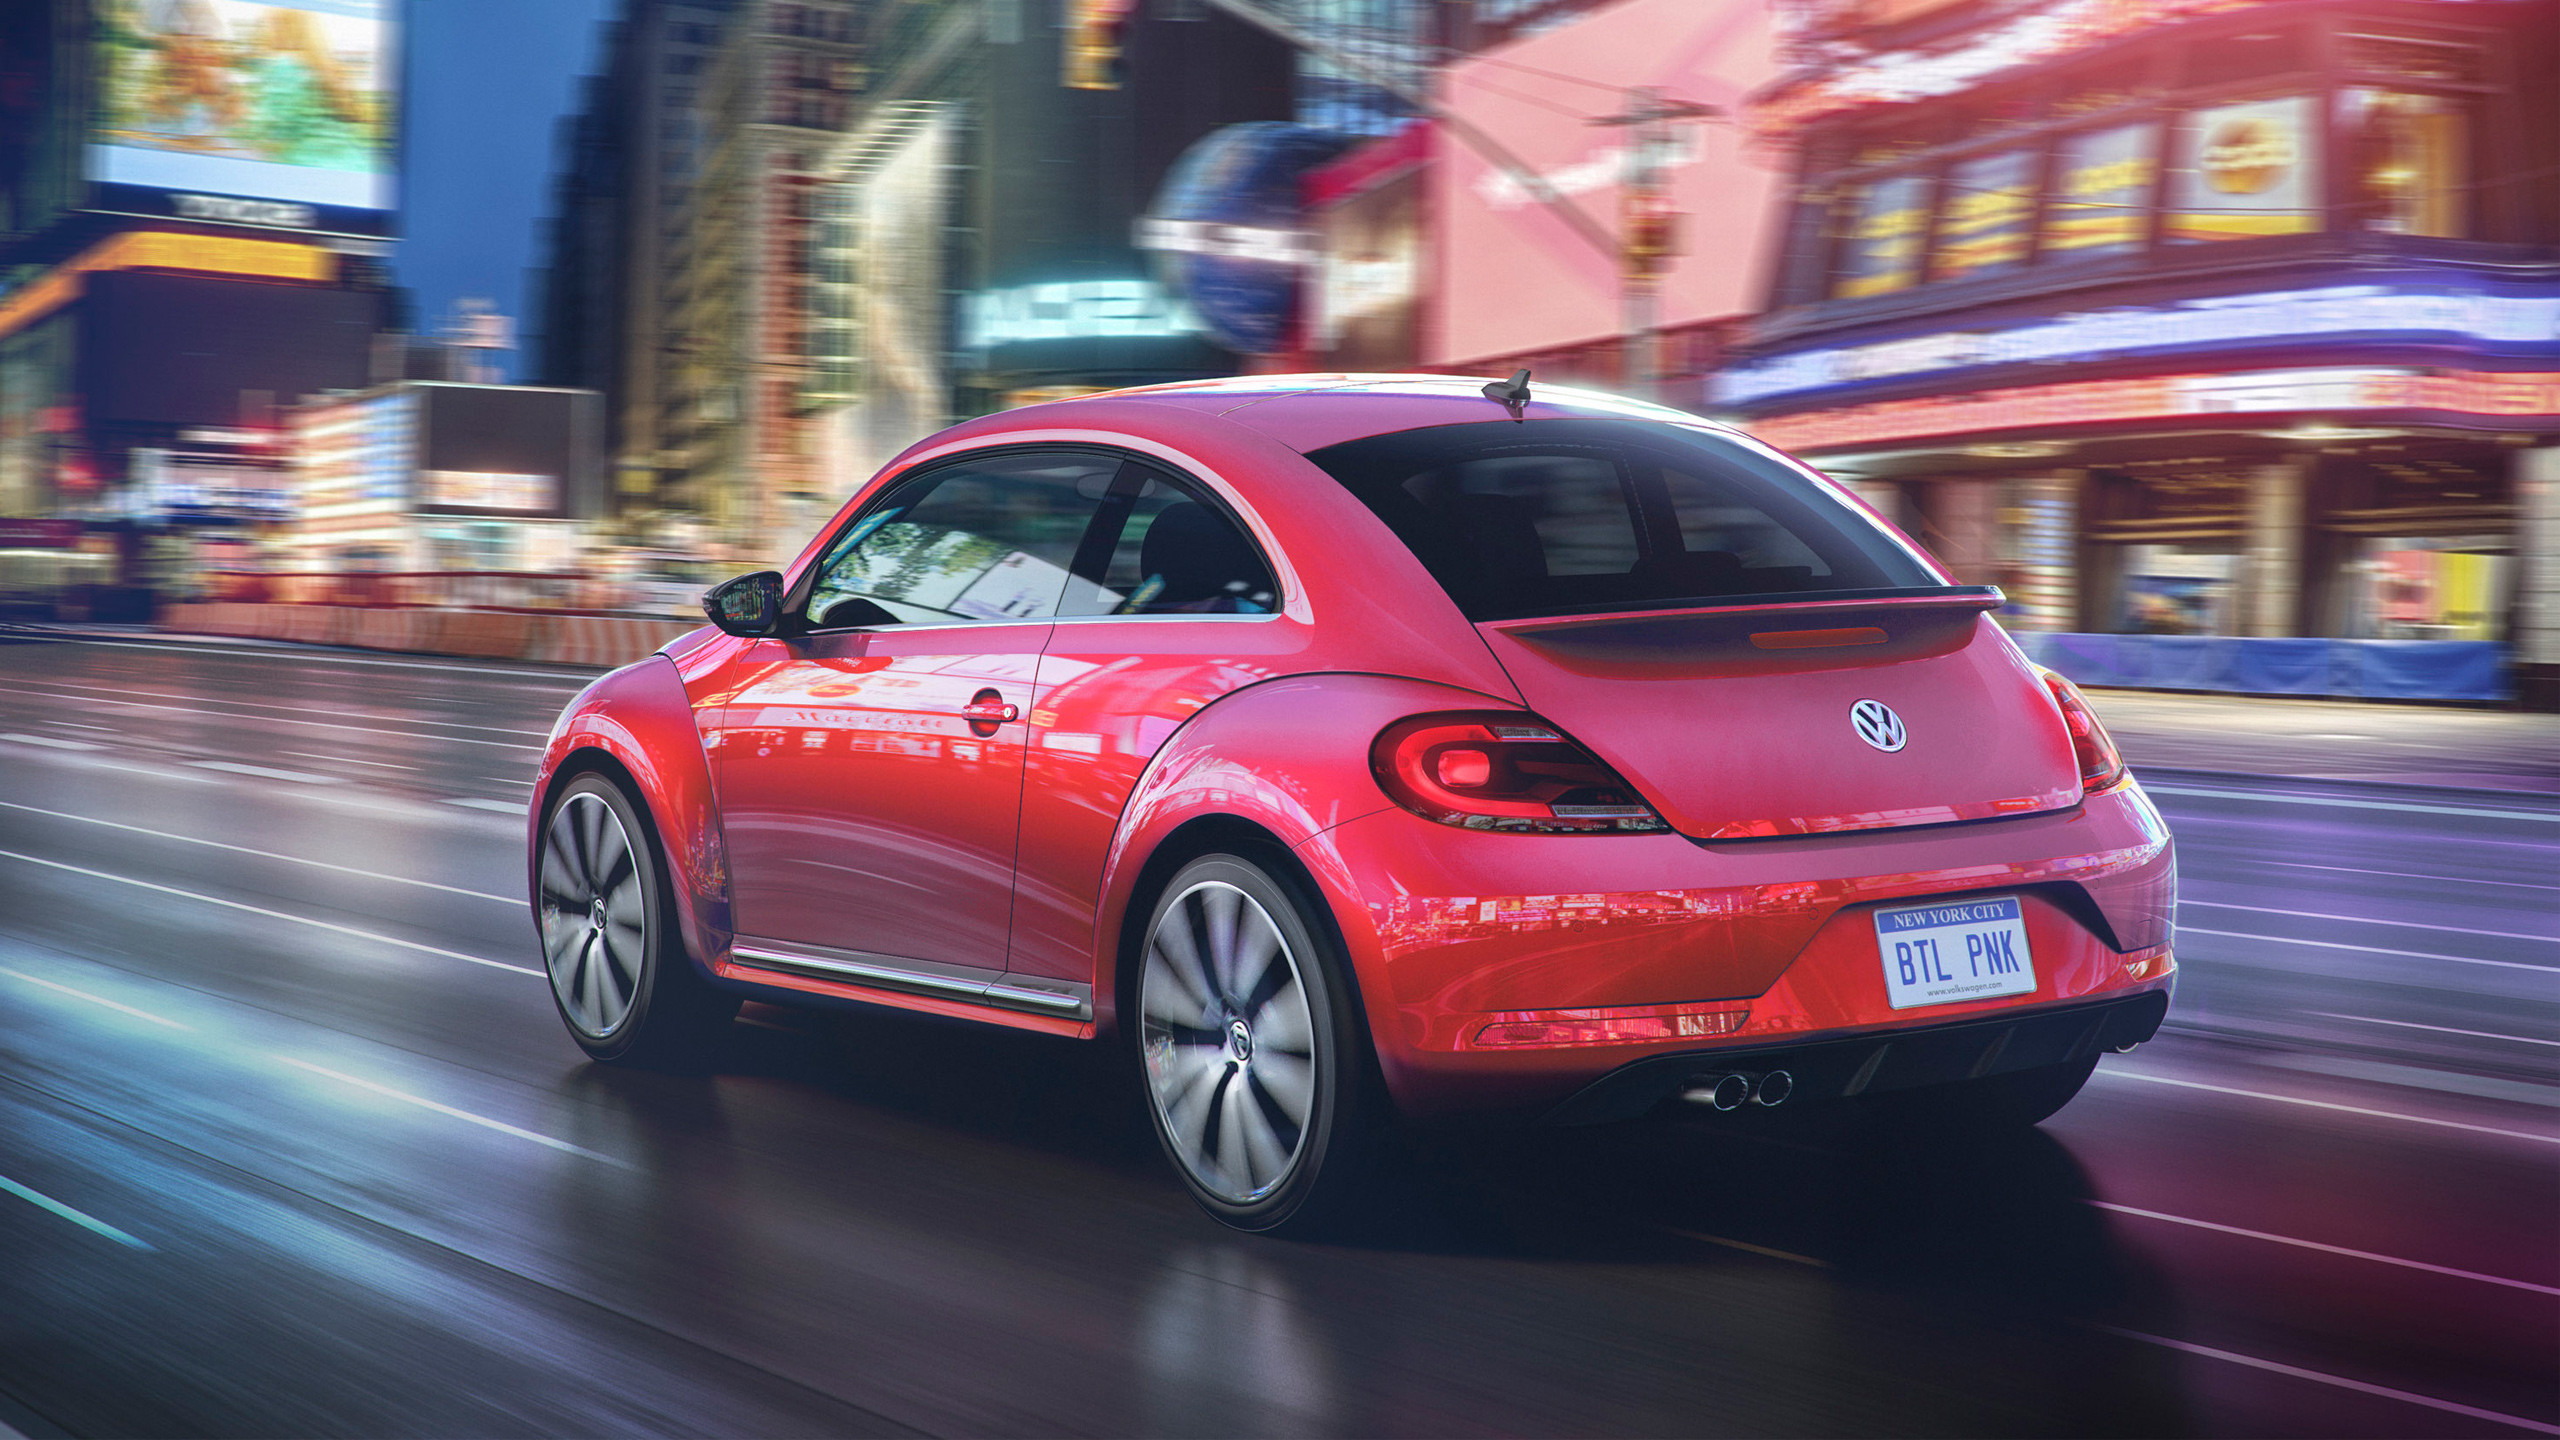 2017 Volkswagen Pink Beetle Limited Edition 2